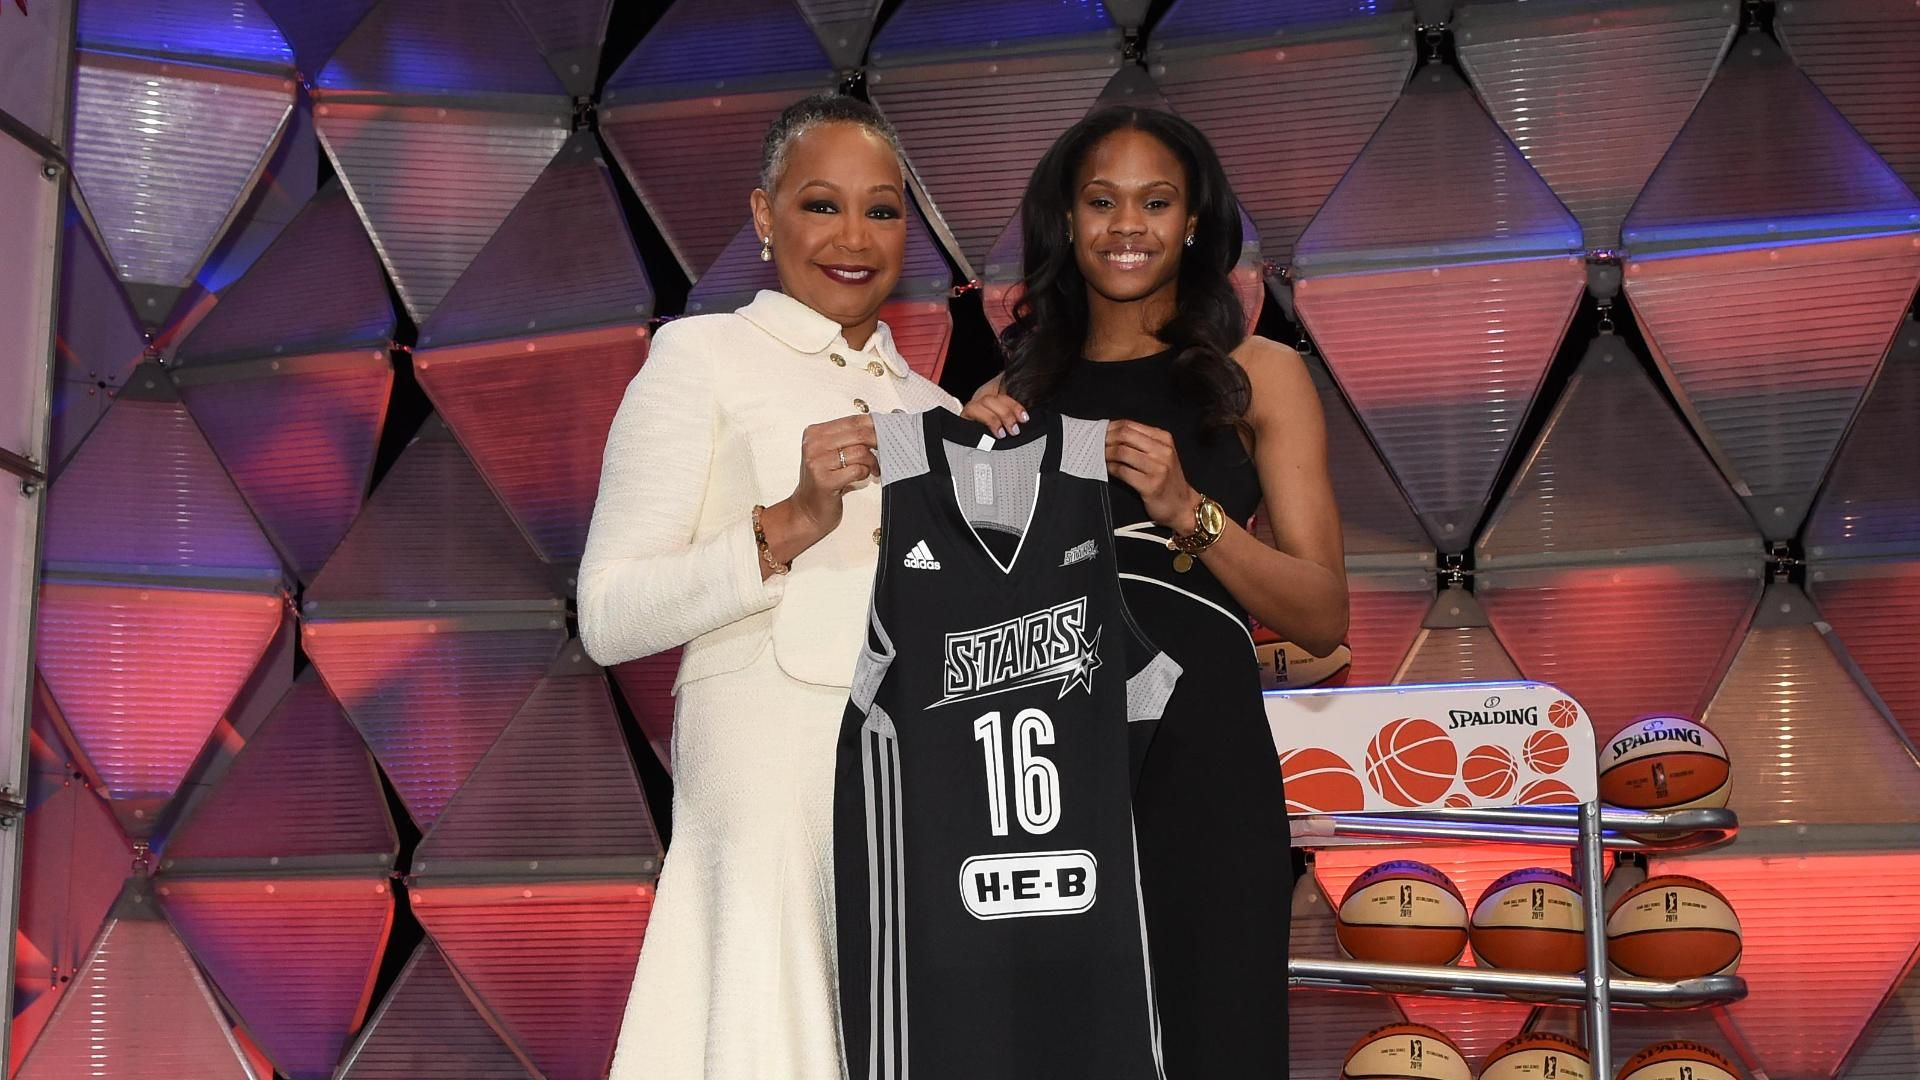 Stars tab Jefferson as No. 2 pick